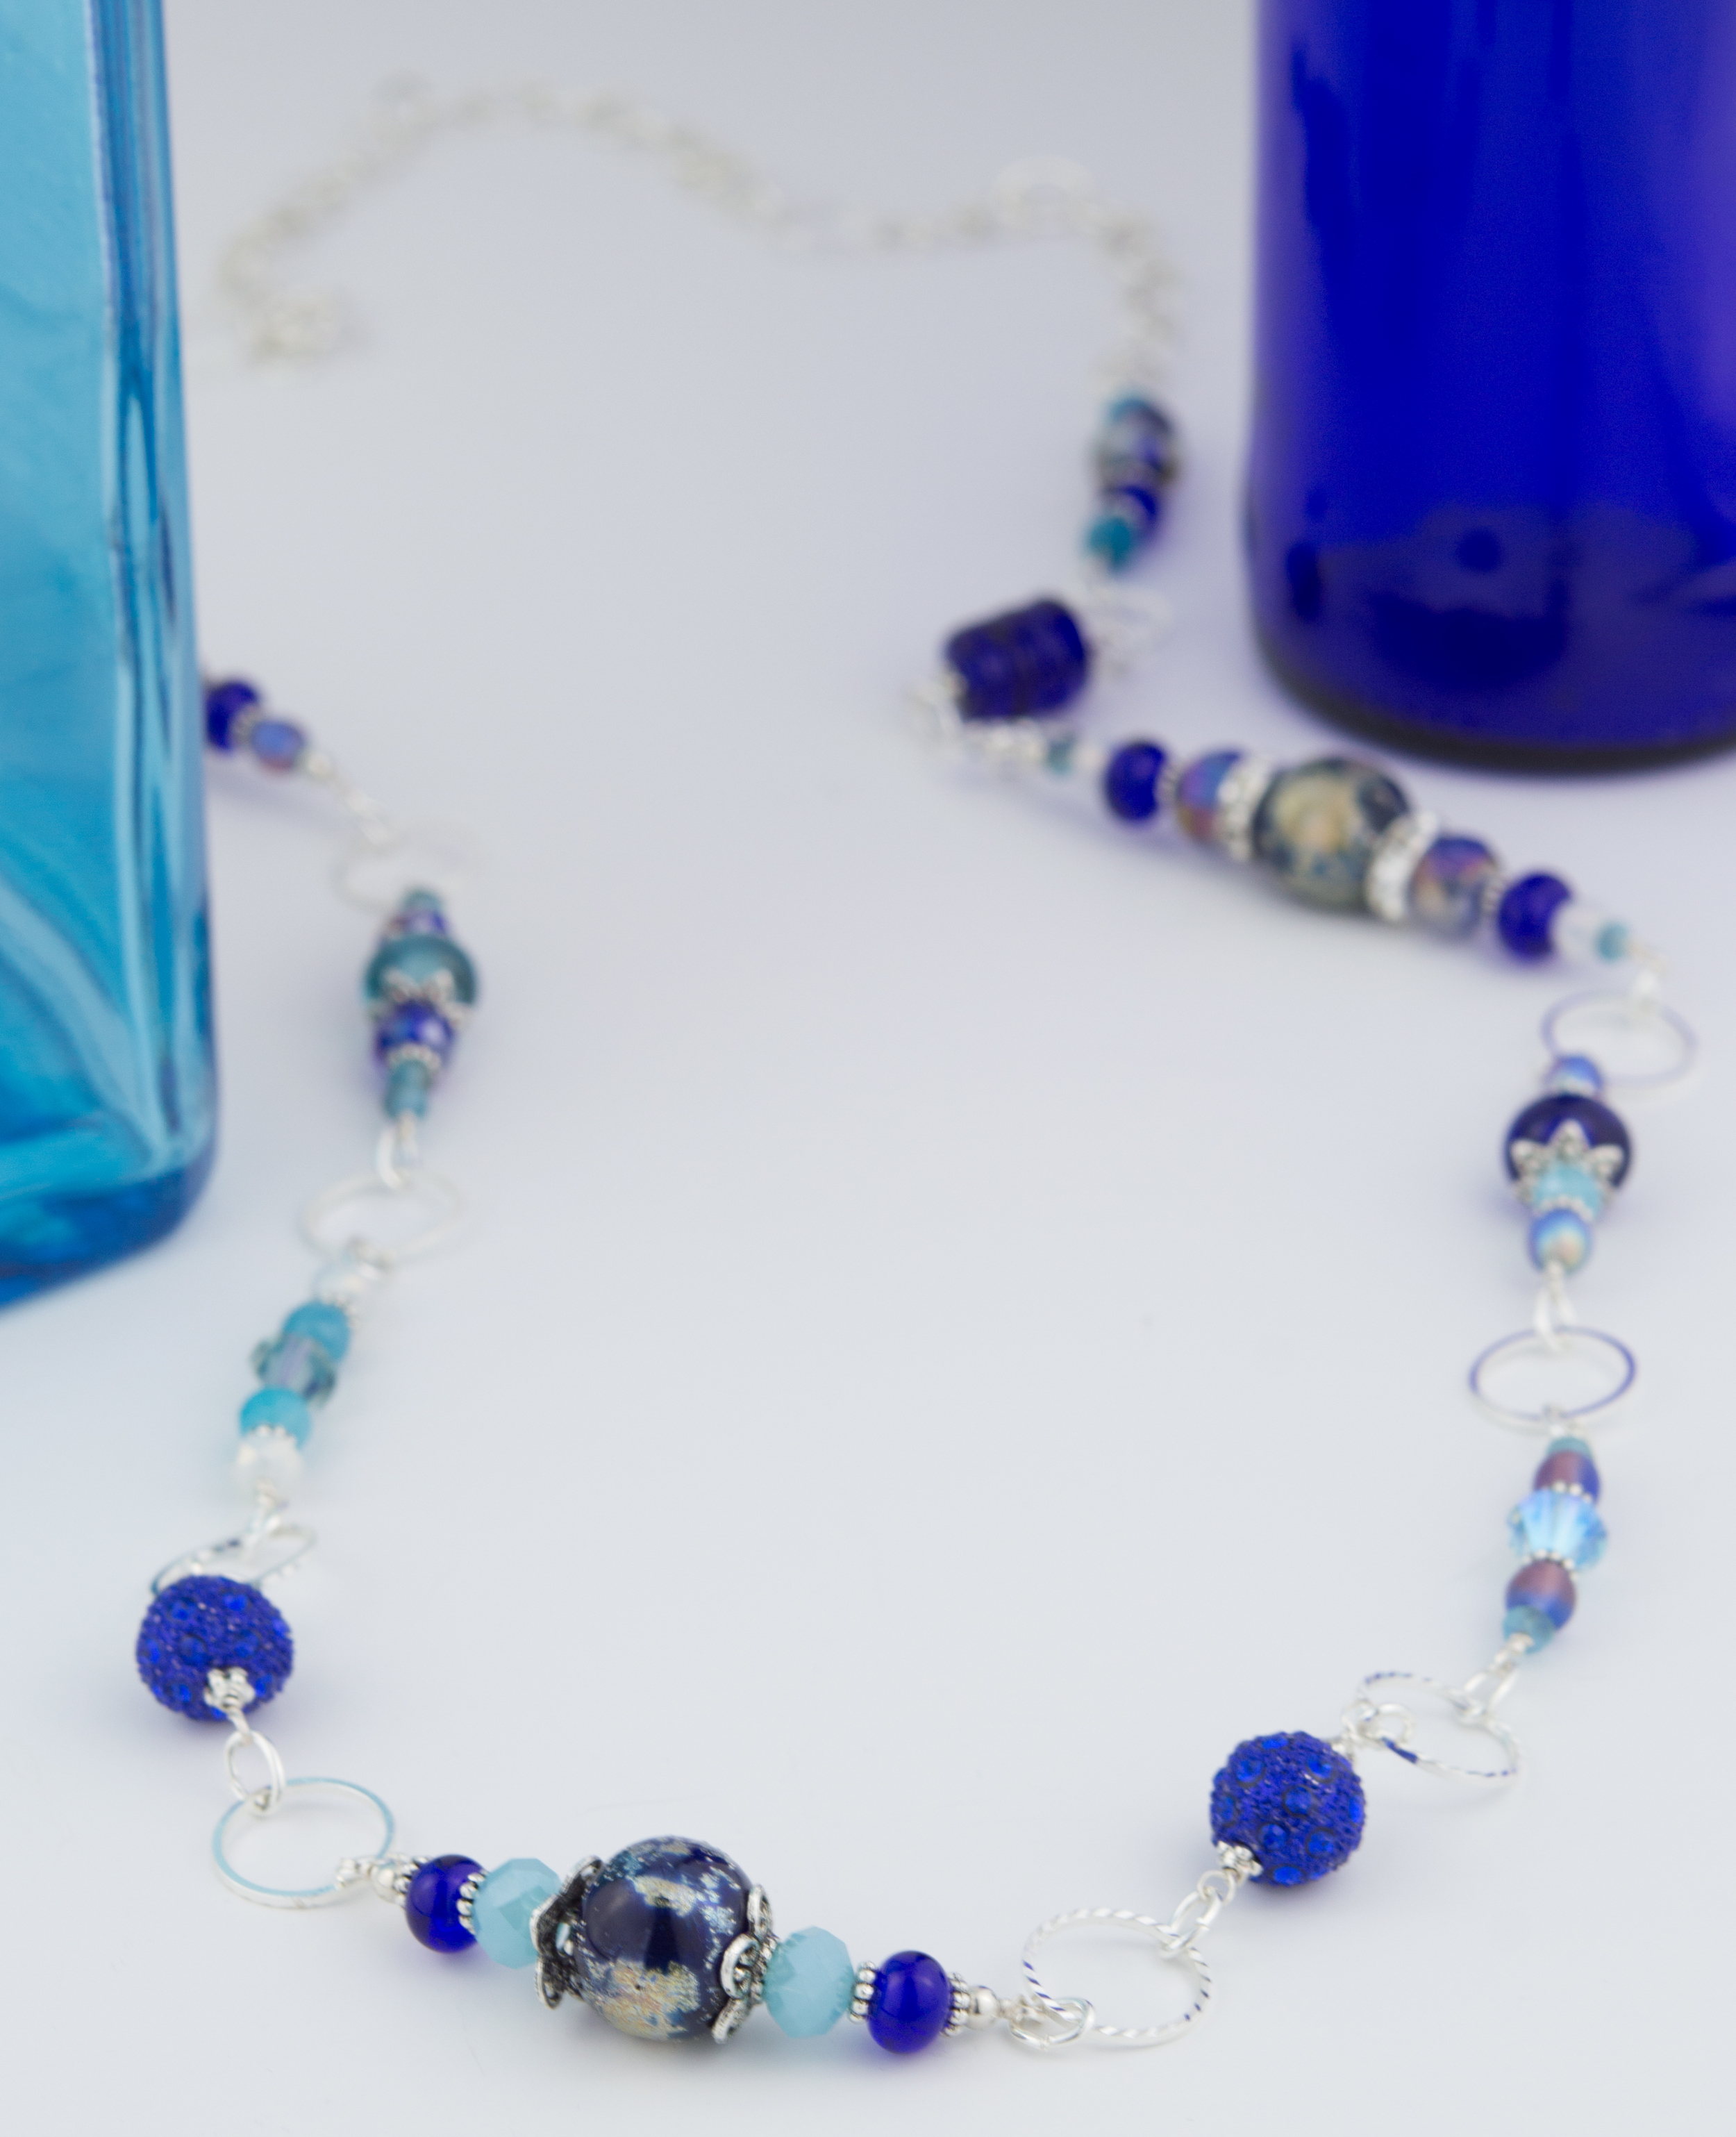 Necklace made for Spare Parts fundraiser auction